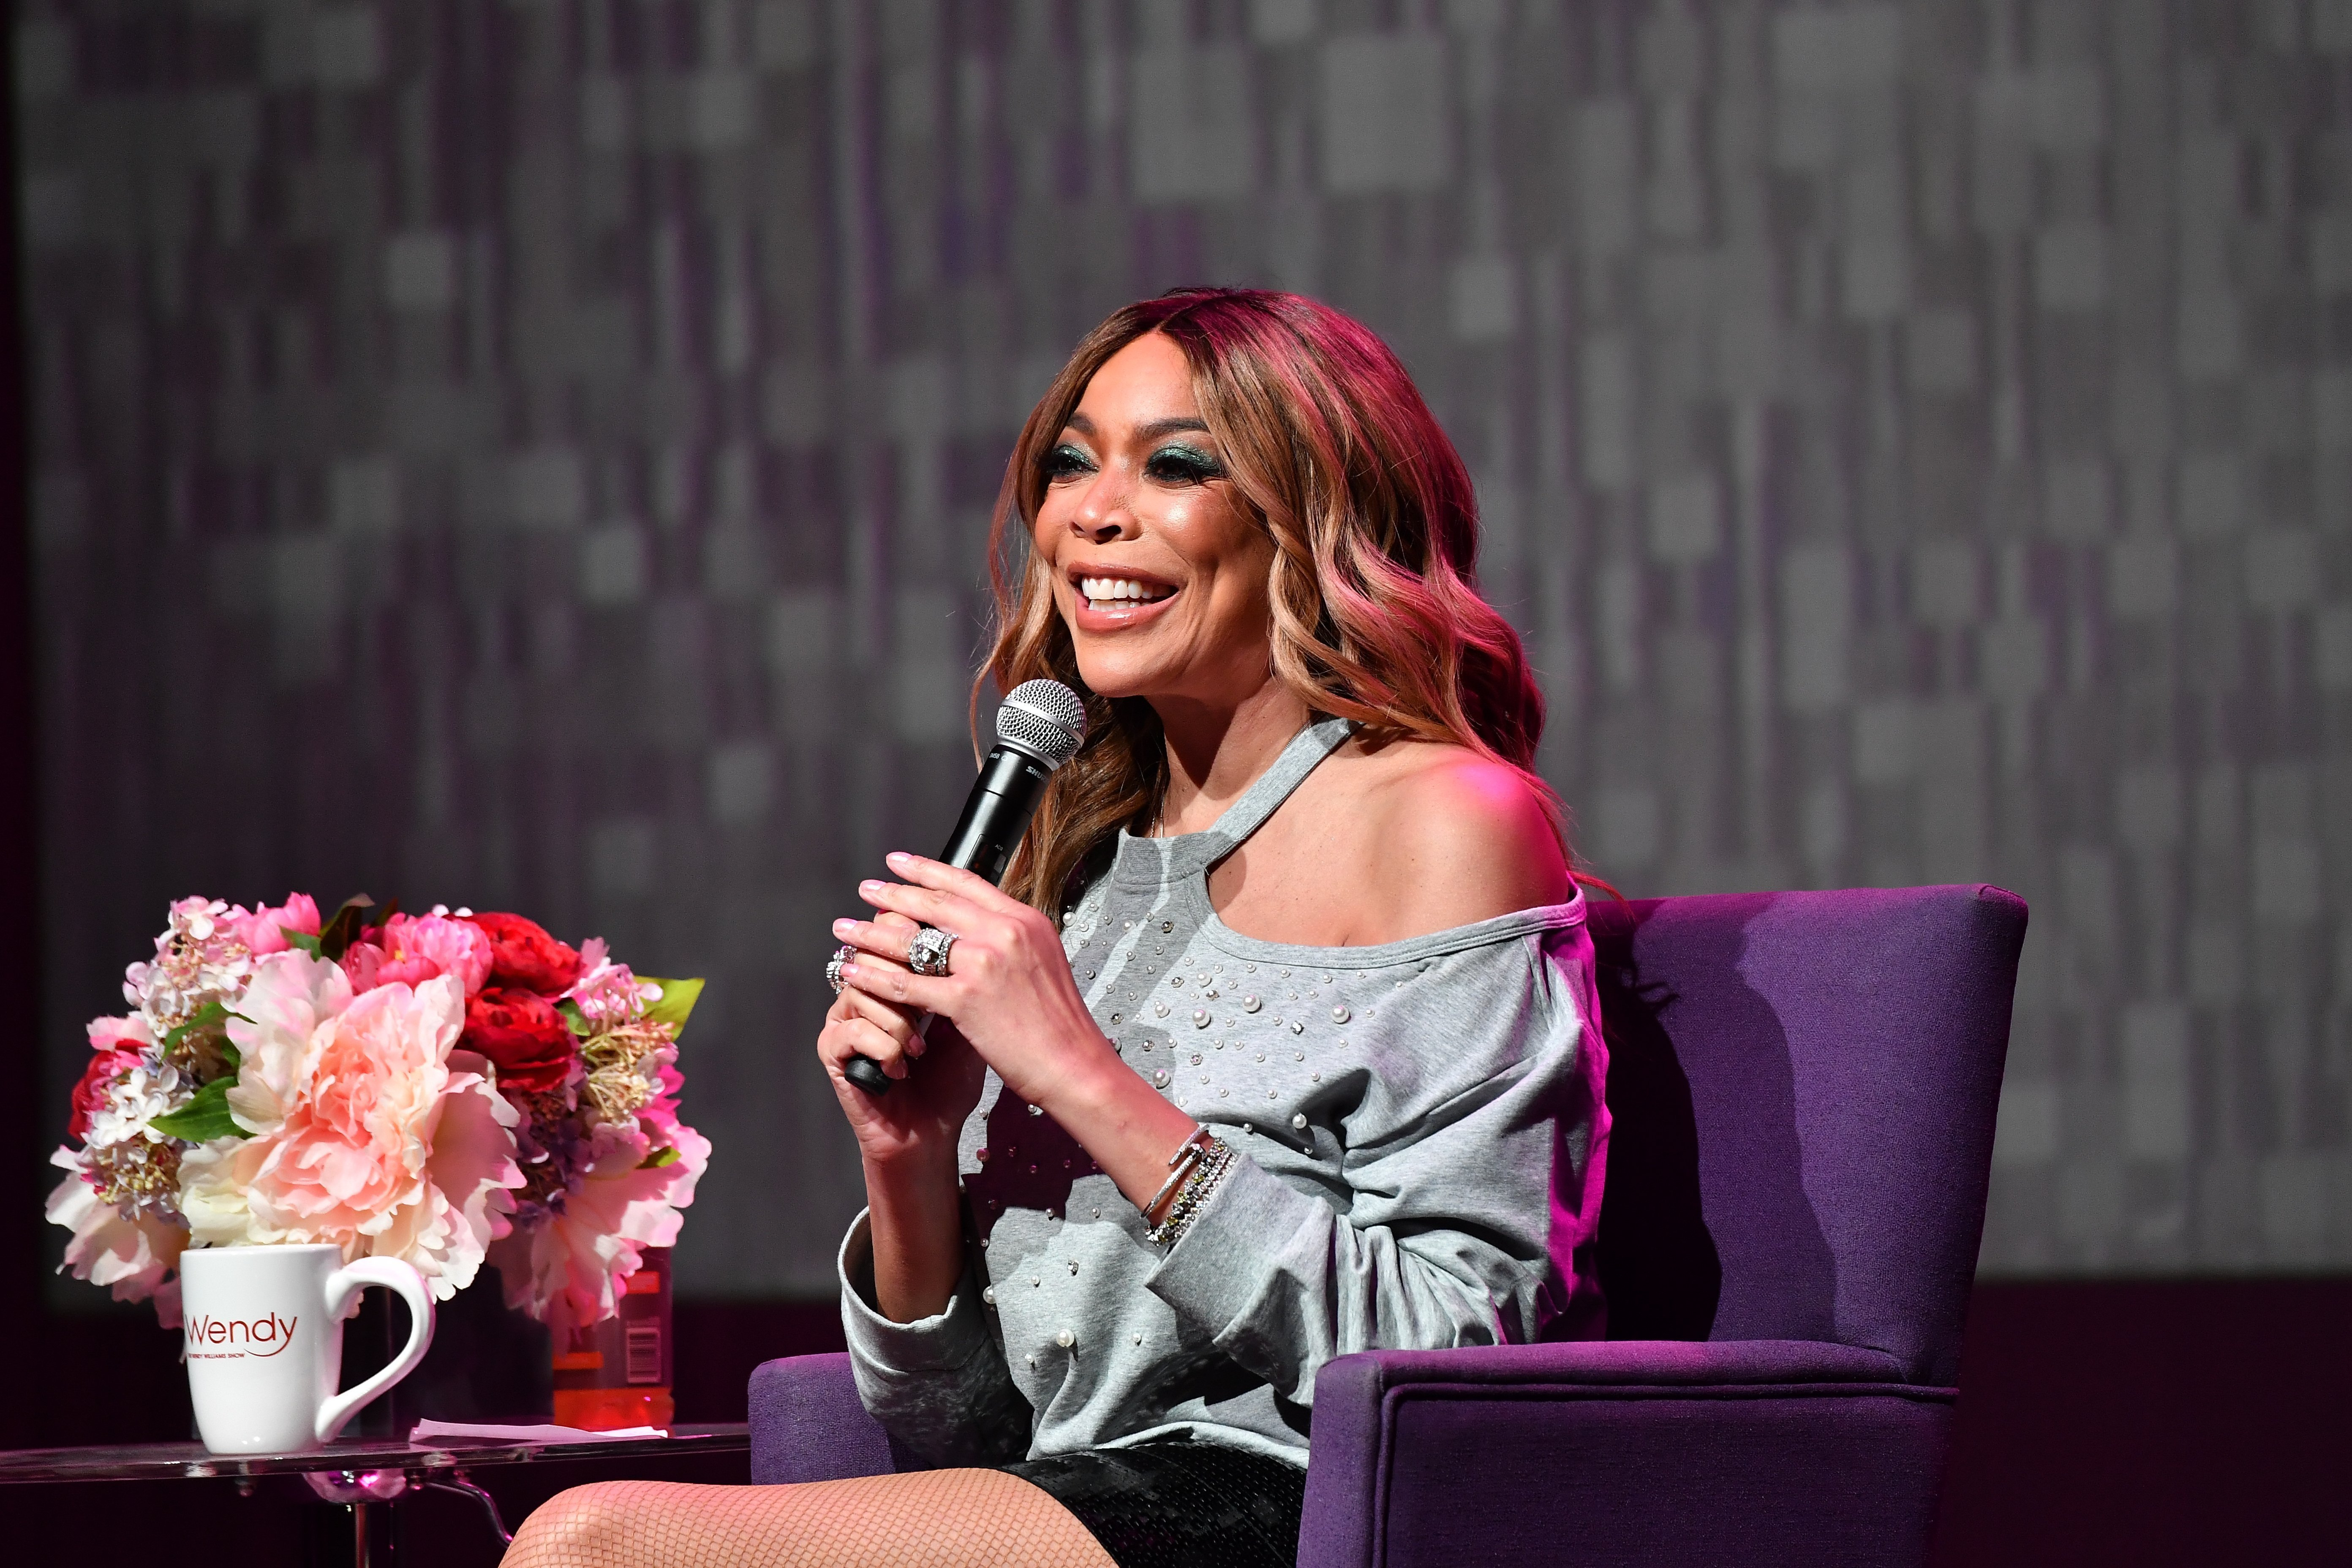 Wendy Williams speaks onstage during her celebration of 10 years of 'The Wendy Williams Show' at The Buckhead Theatre on August 16, 2018. | Photo: GettyImages